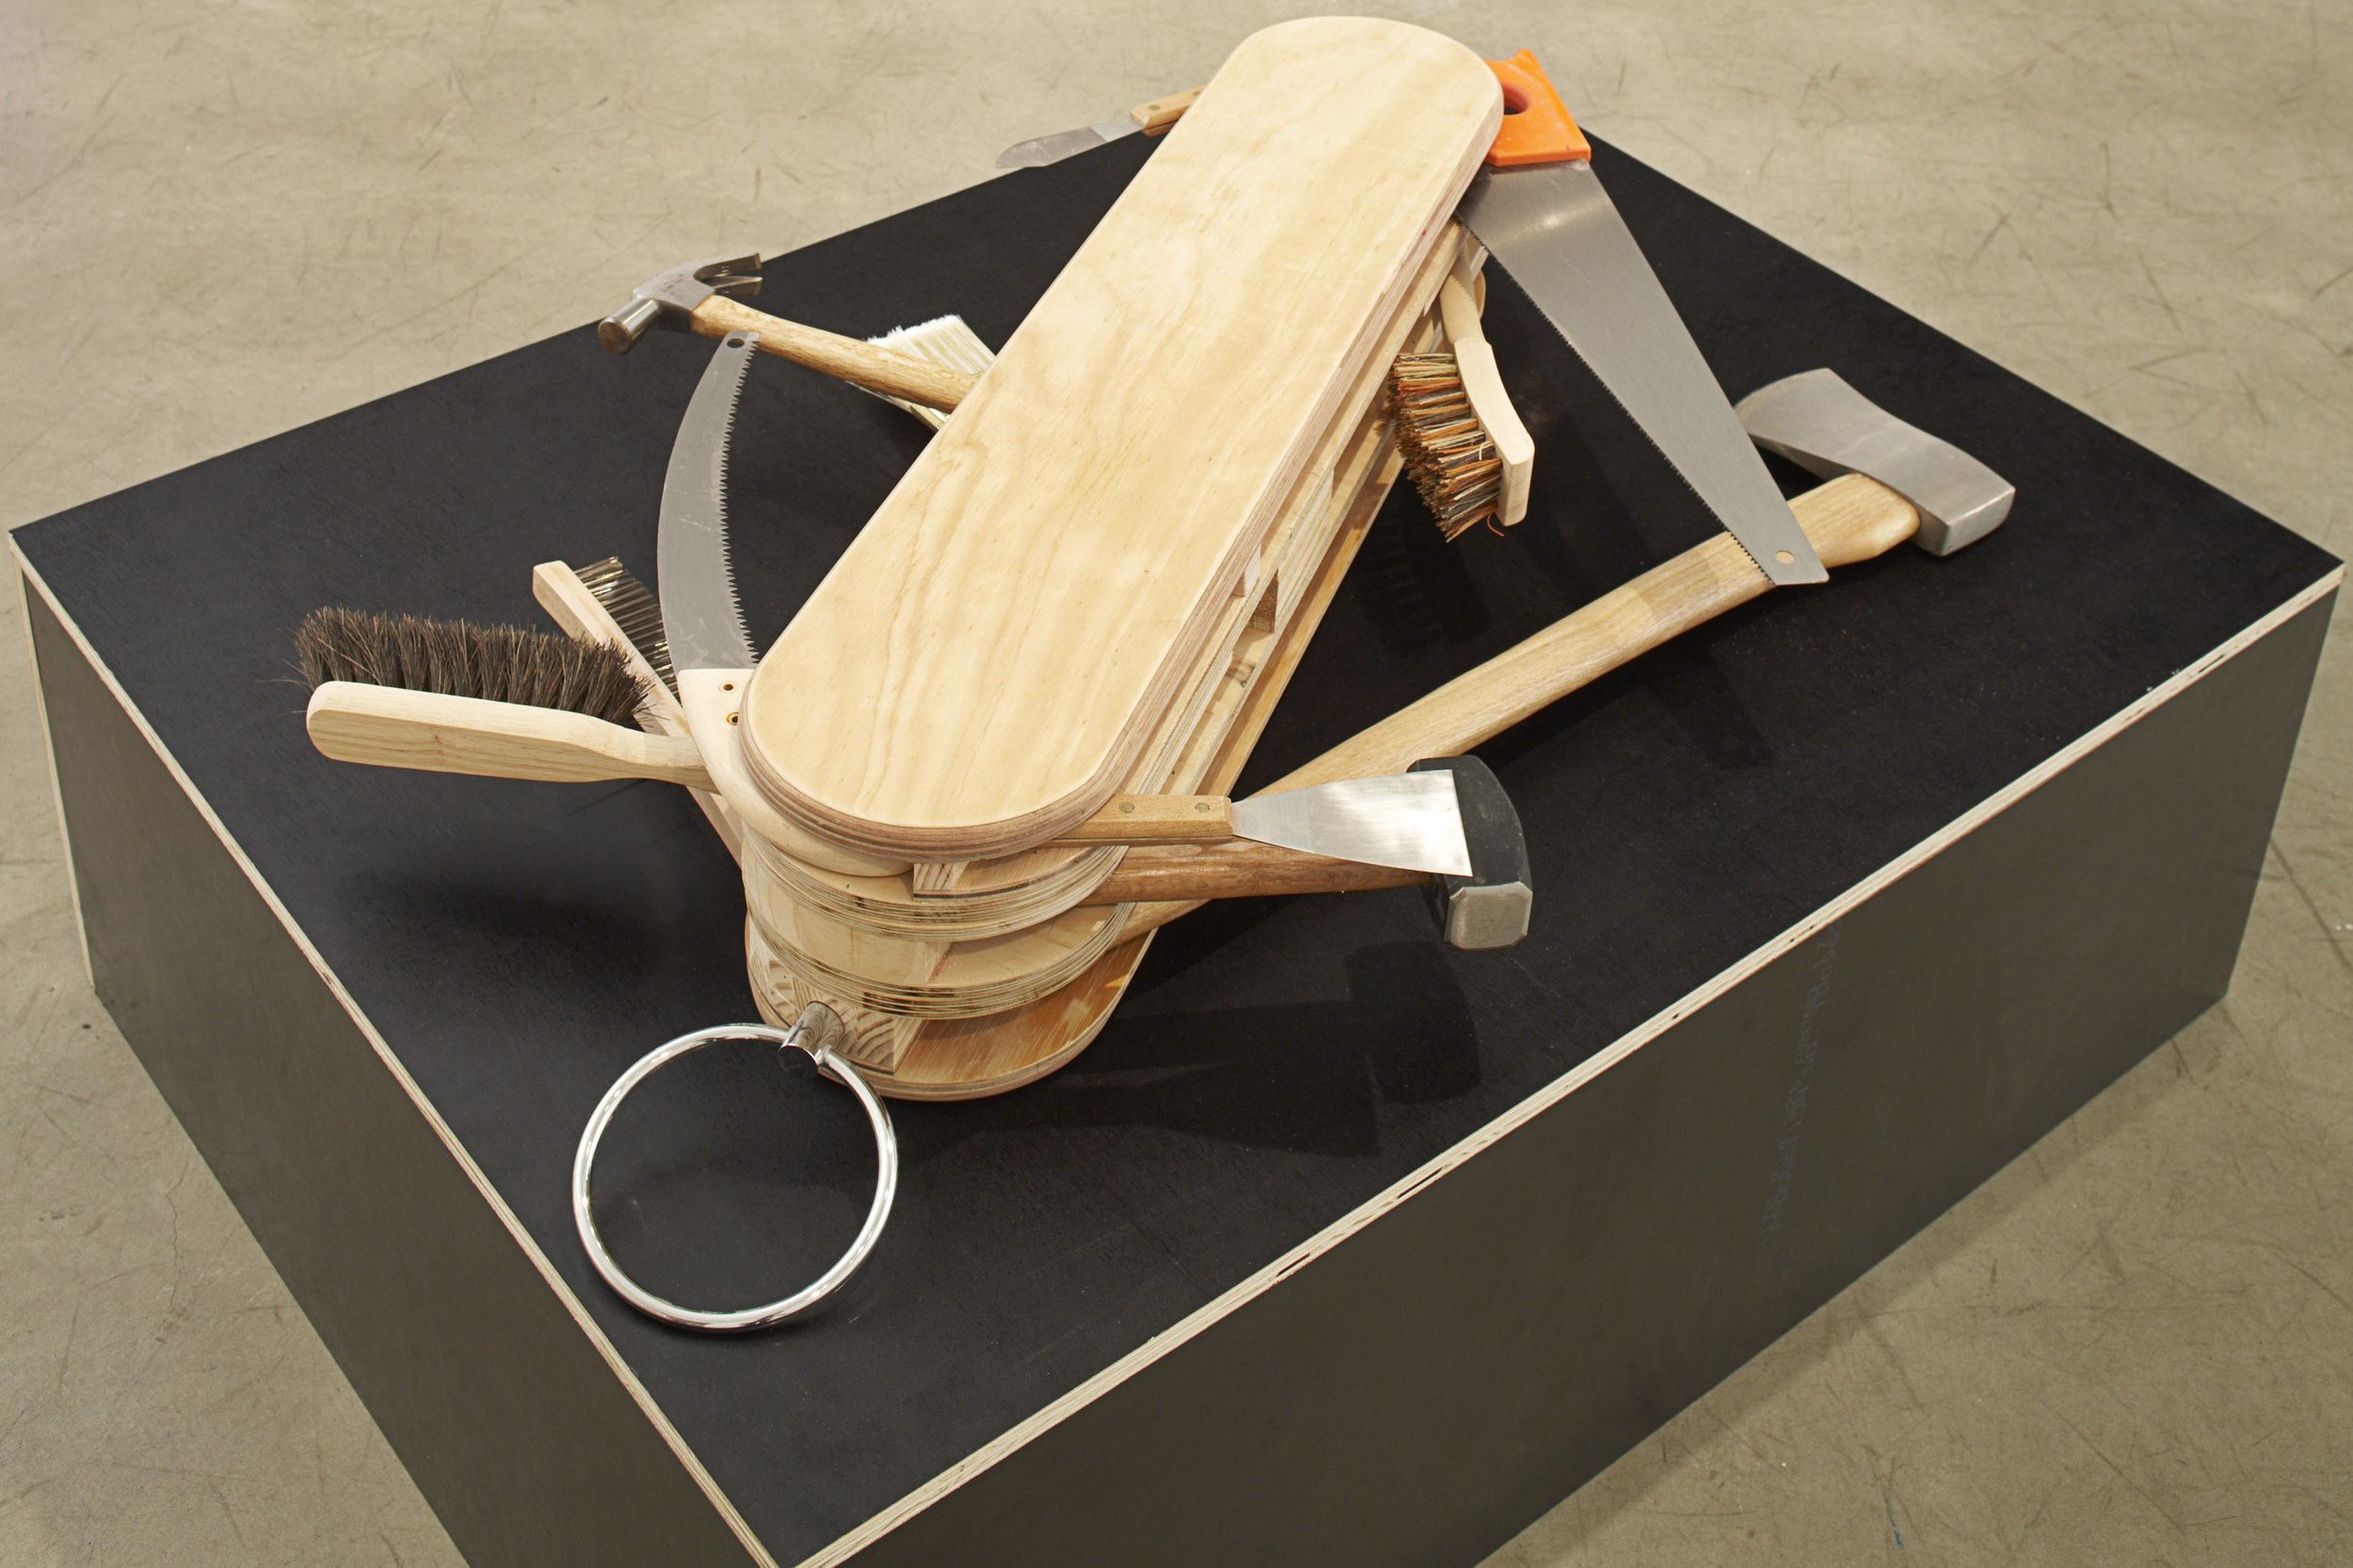 You Tool, 2008 Mixed Media 18.5 20 x 105 cm closed Dimensions Variable